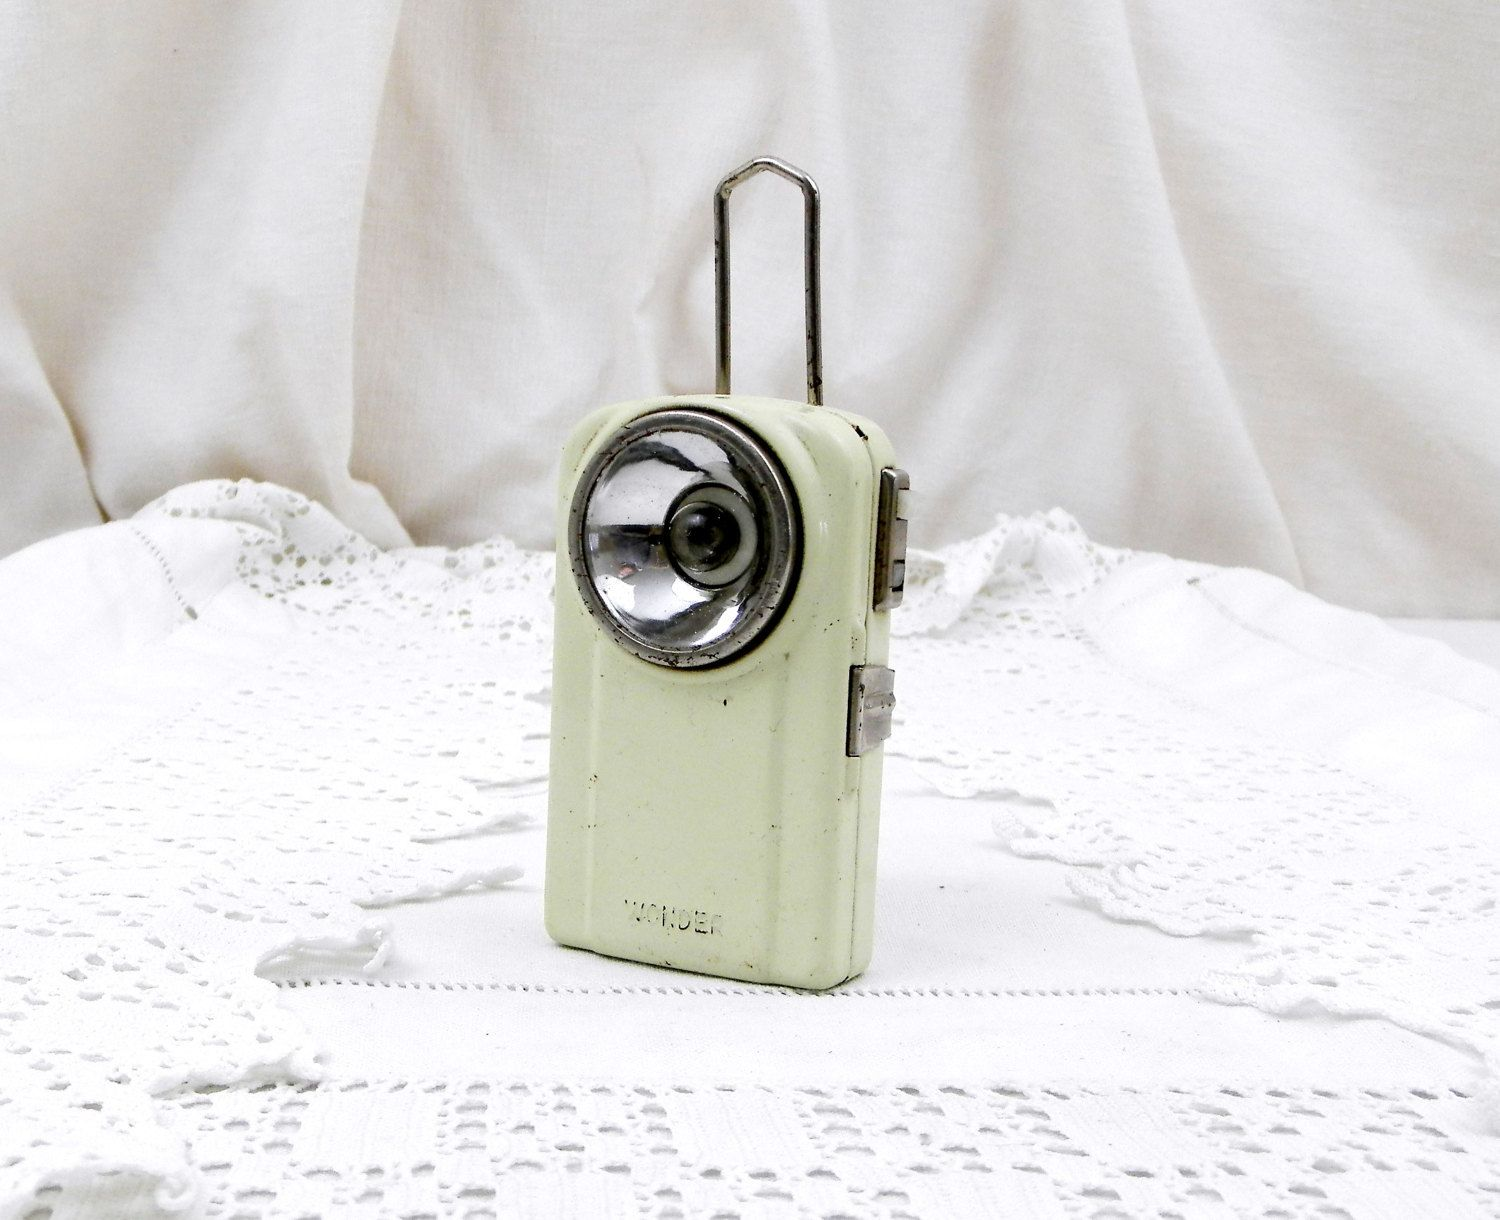 Small Vintage French White Hand Held Metal Wonder Flashlight / Torch, Searchlight, Upcycled, Decor, Industrial, Retro, Lamp, Lantern, Light by VintageDecorFrancais on Etsy